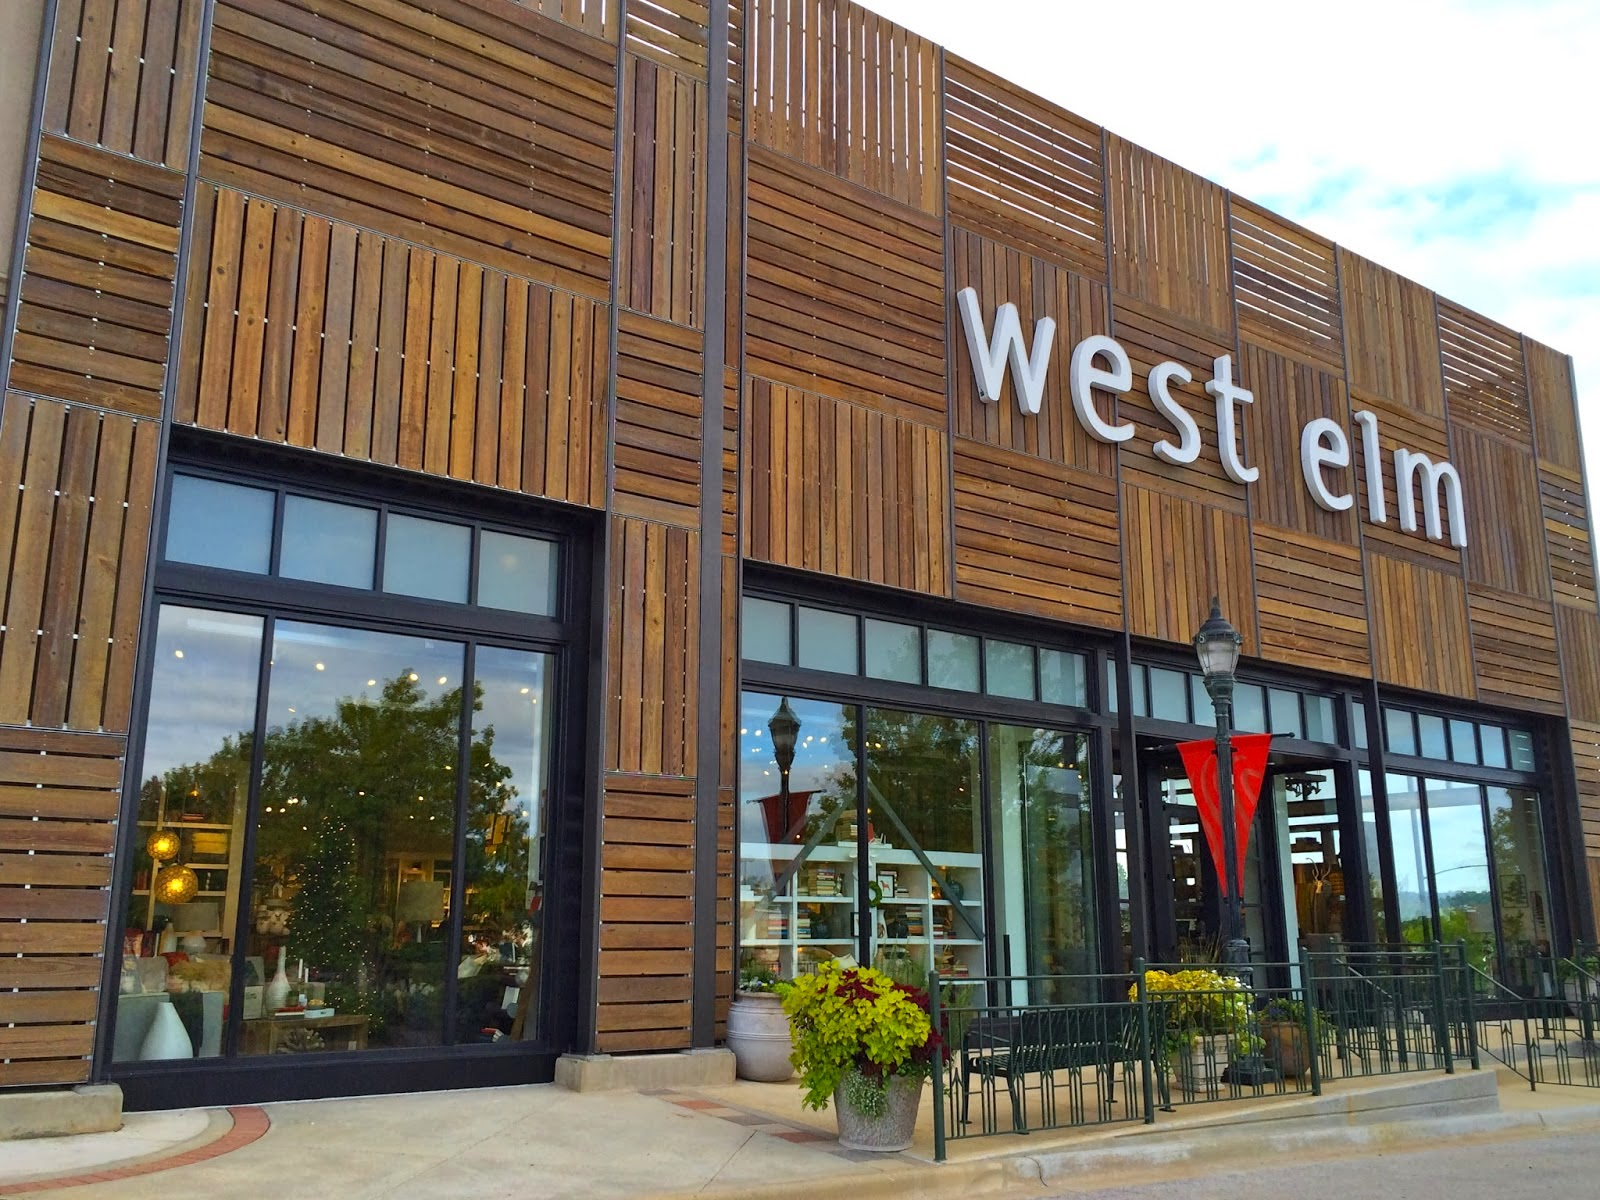 West elm discount coupon